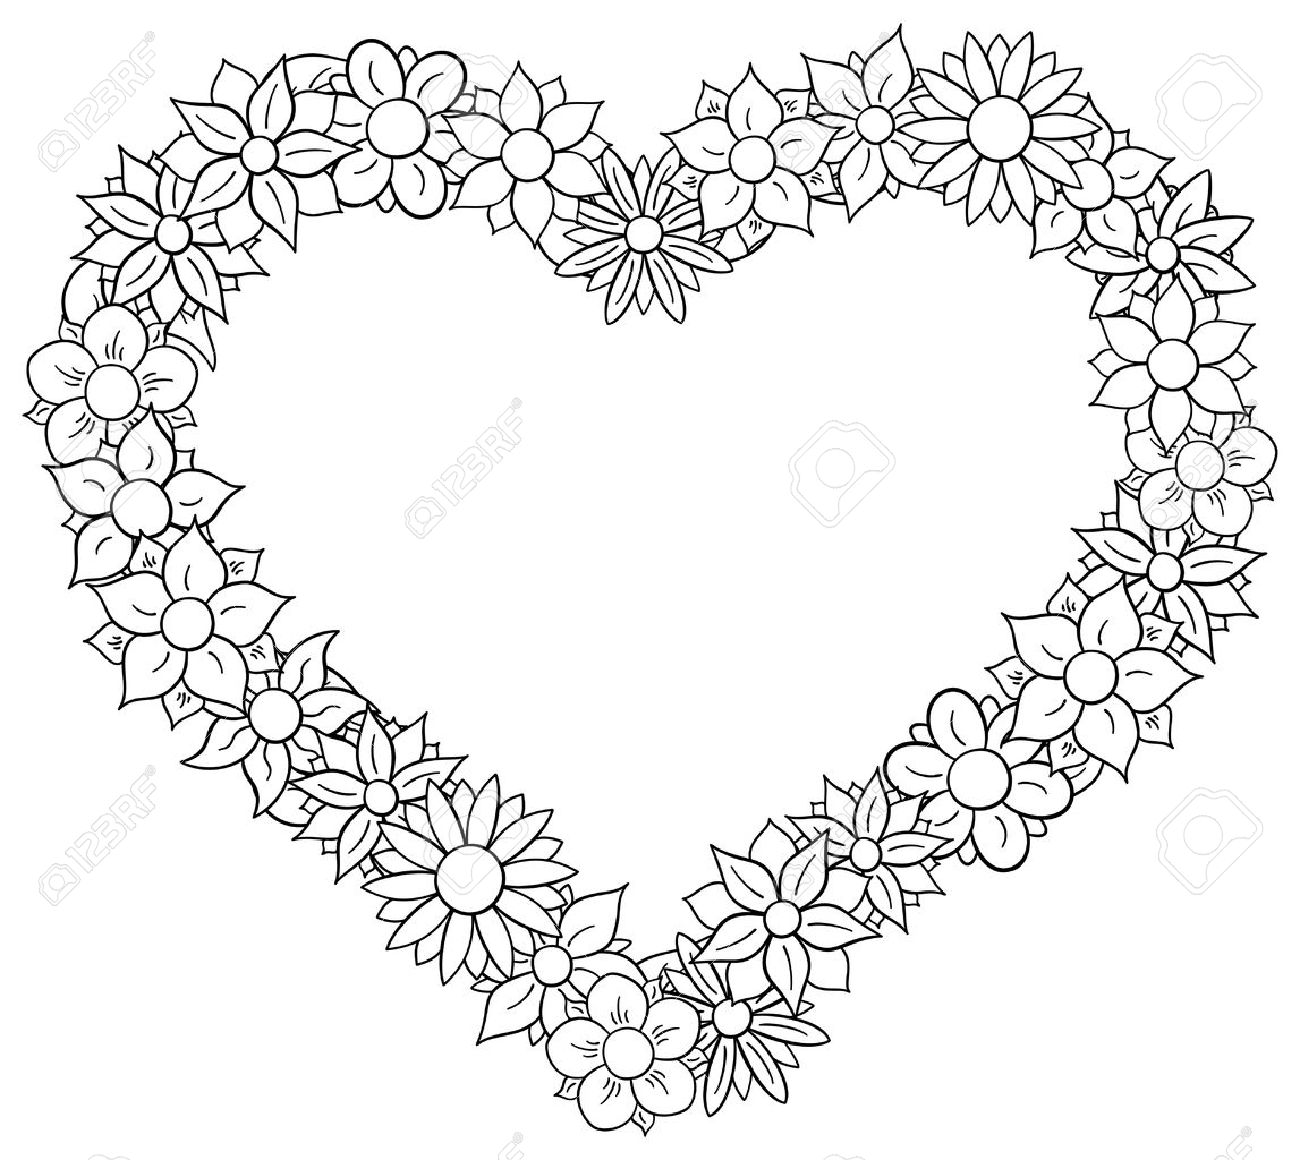 11 309 heart book stock vector illustration and royalty free heart